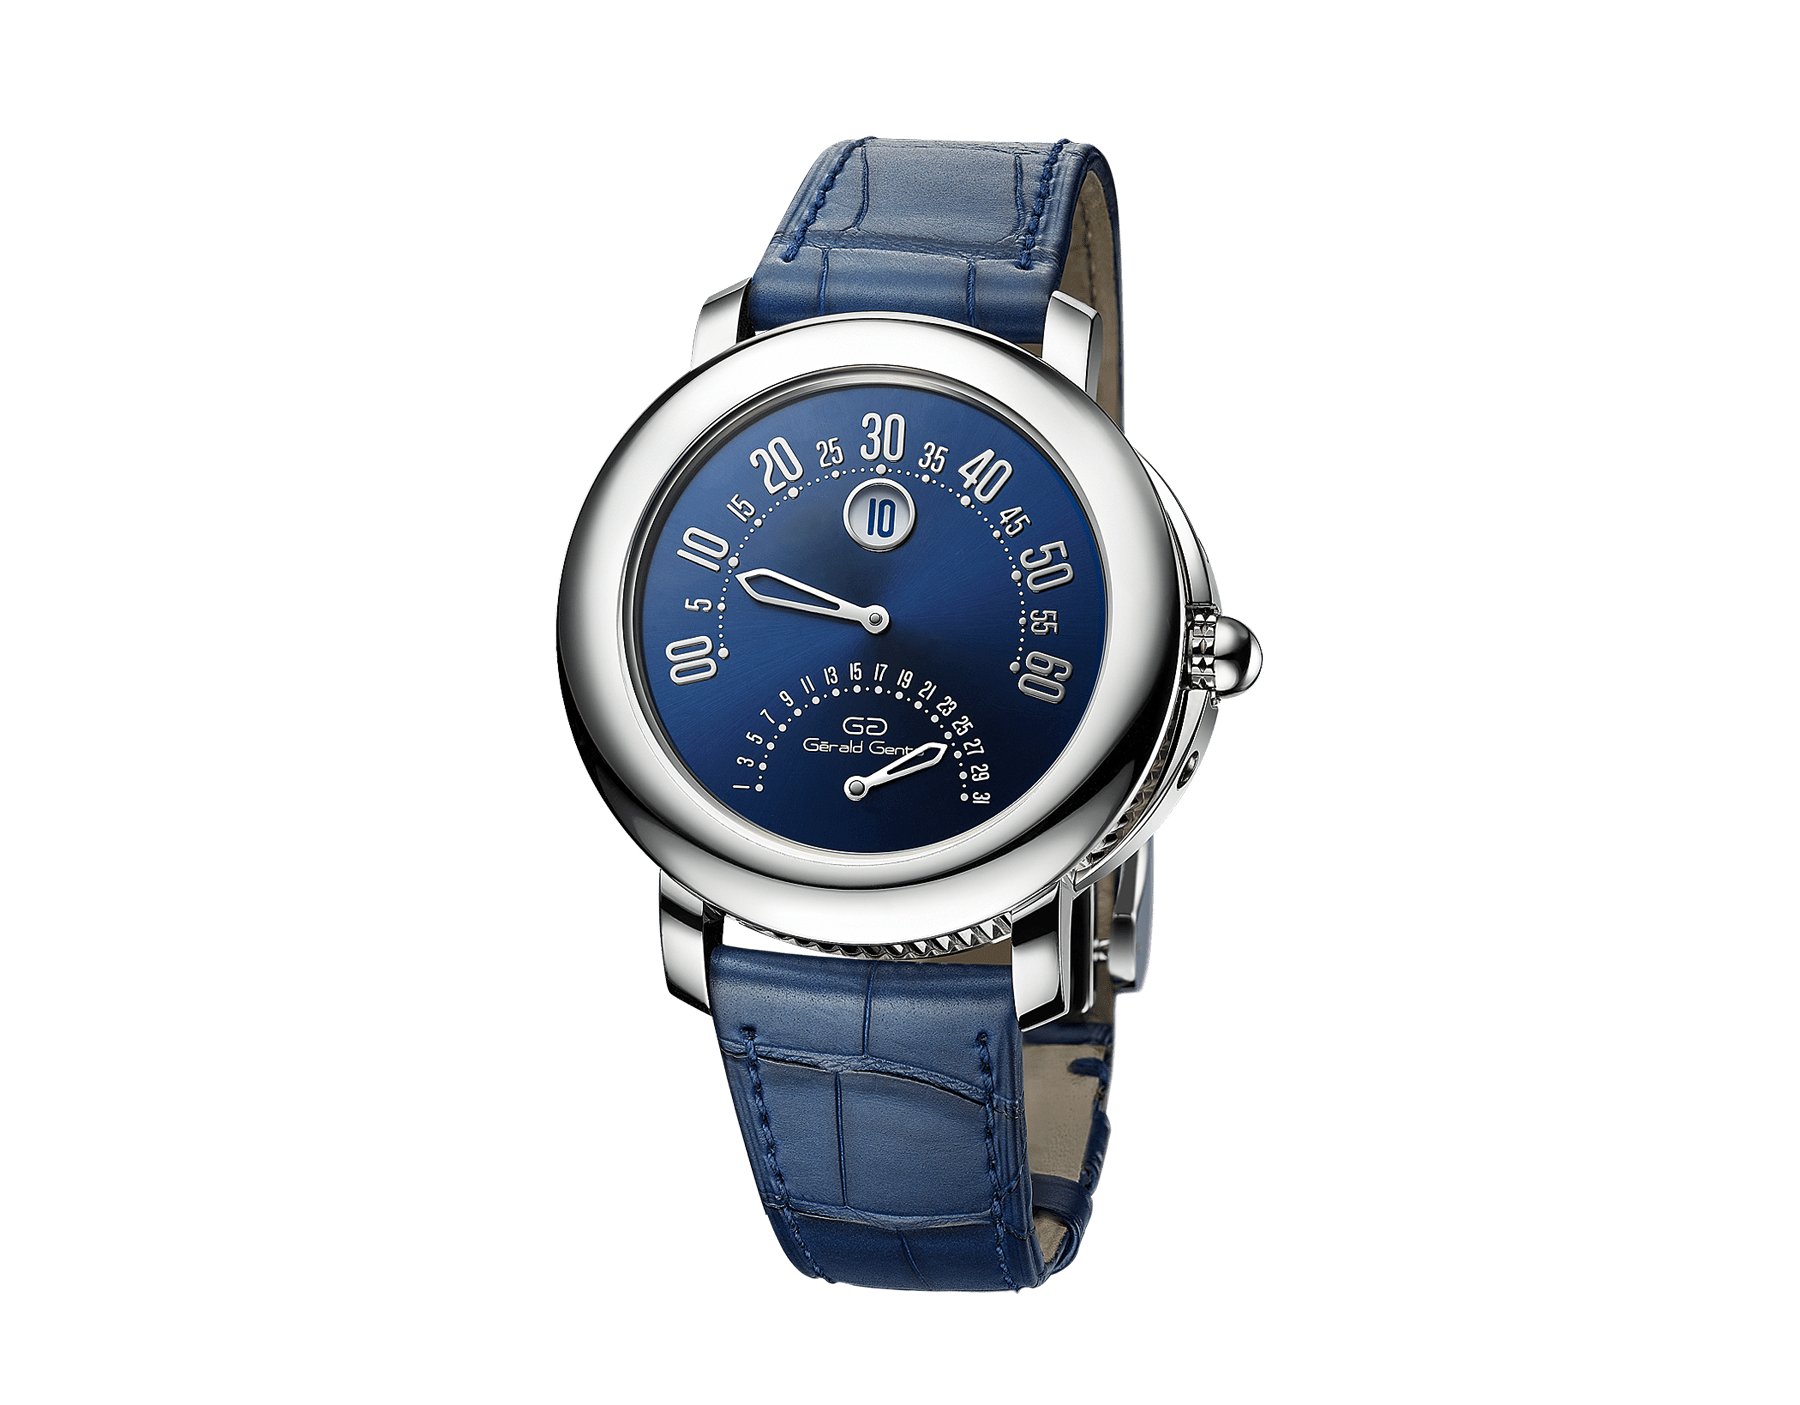 Gerald Genta 50th Anniversary Arena Bi-retro watch with mechanical manufacture movement, bidirectional automatic winding, jumping hours, retrograde minutes (210°) and date (180°), 41 mm platinum case, blue lacquered dial and blue alligator bracelet 103191 image 1